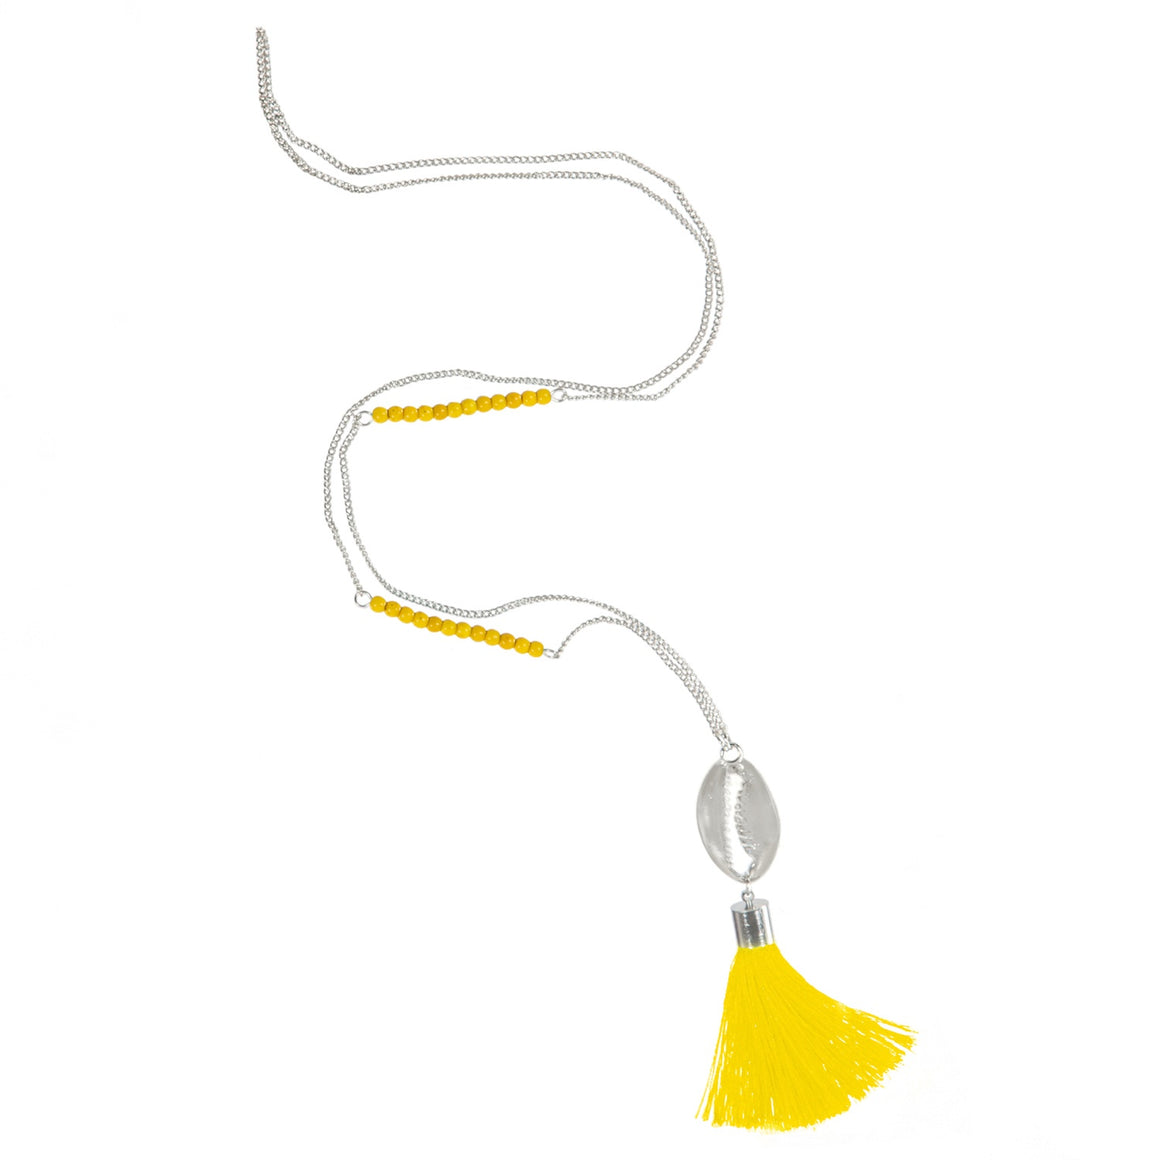 METAL COWRY & TASSEL PENDANT FINE CHAIN LONG NECKLACE YELLOW